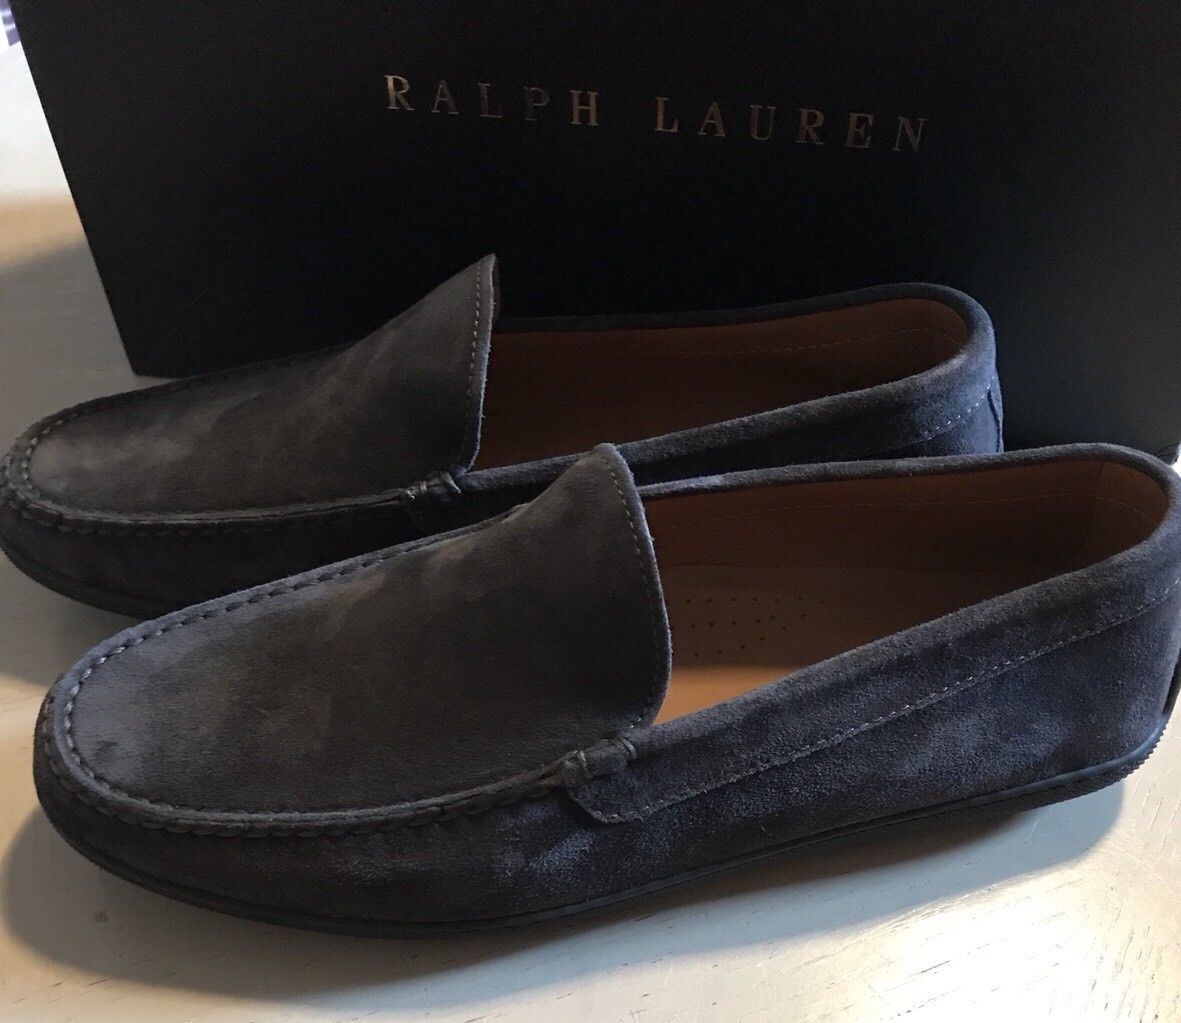 New $525 Men's Ralph Lauren Purple Label Suede Driver Shoes Gray 7.5 US - BAYSUPERSTORE